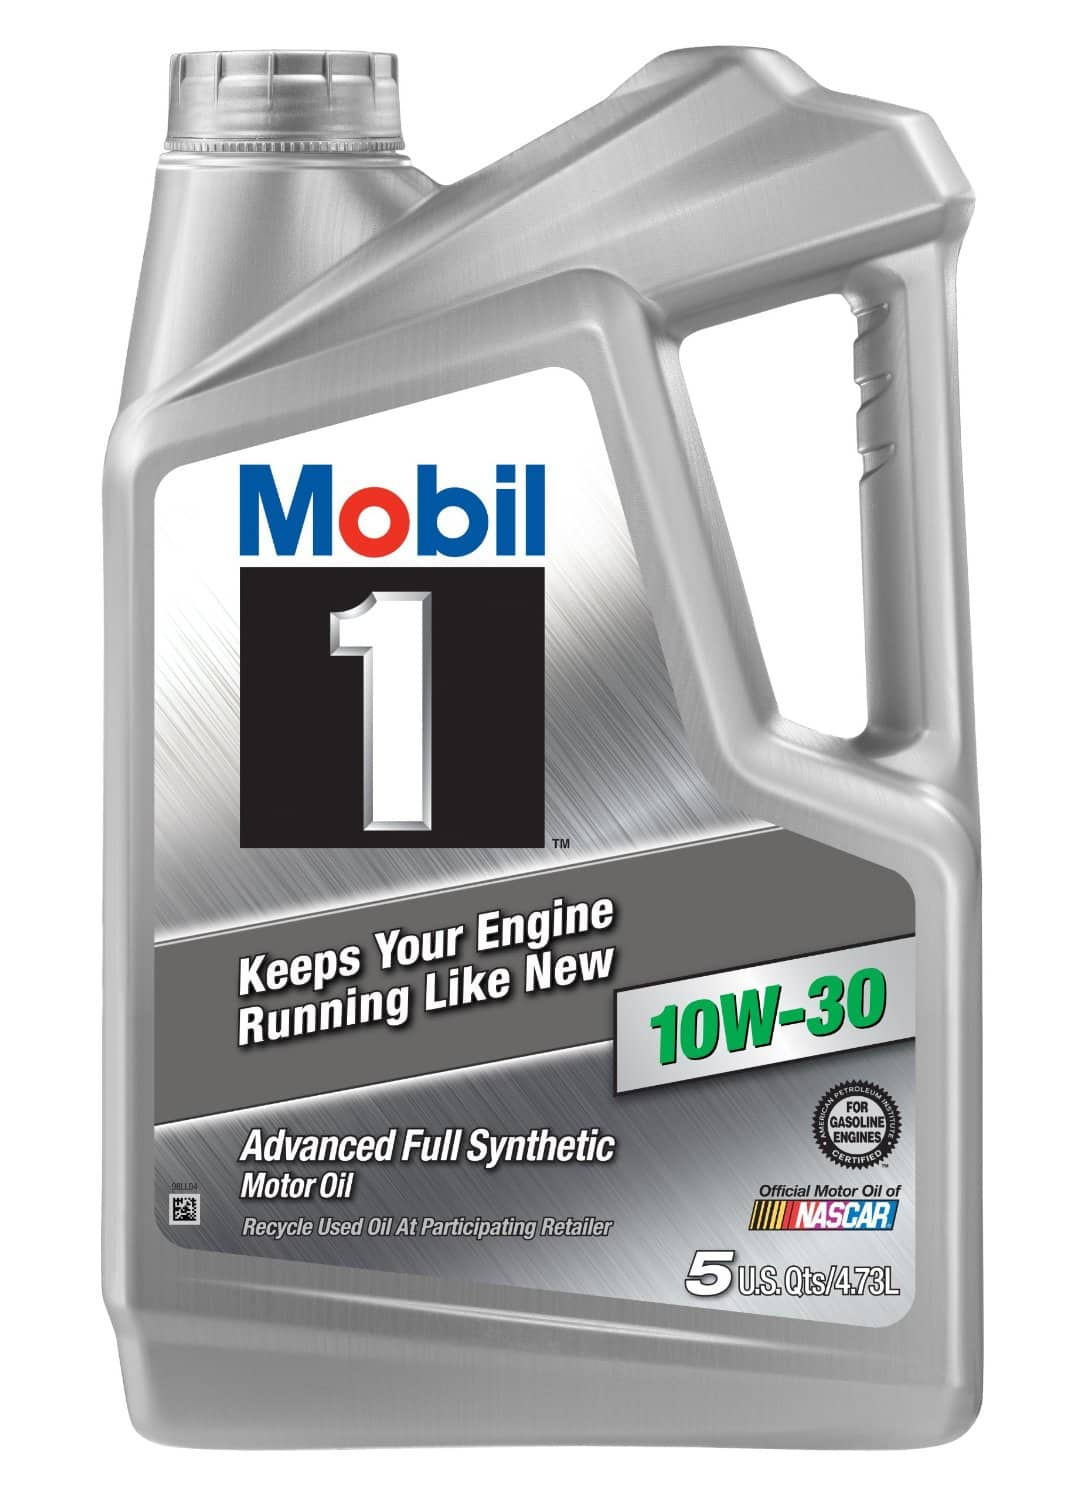 5-Qt Mobil 1 Synthetic Motor Oil (various viscosities)  $22.70 + Free Store Pickup